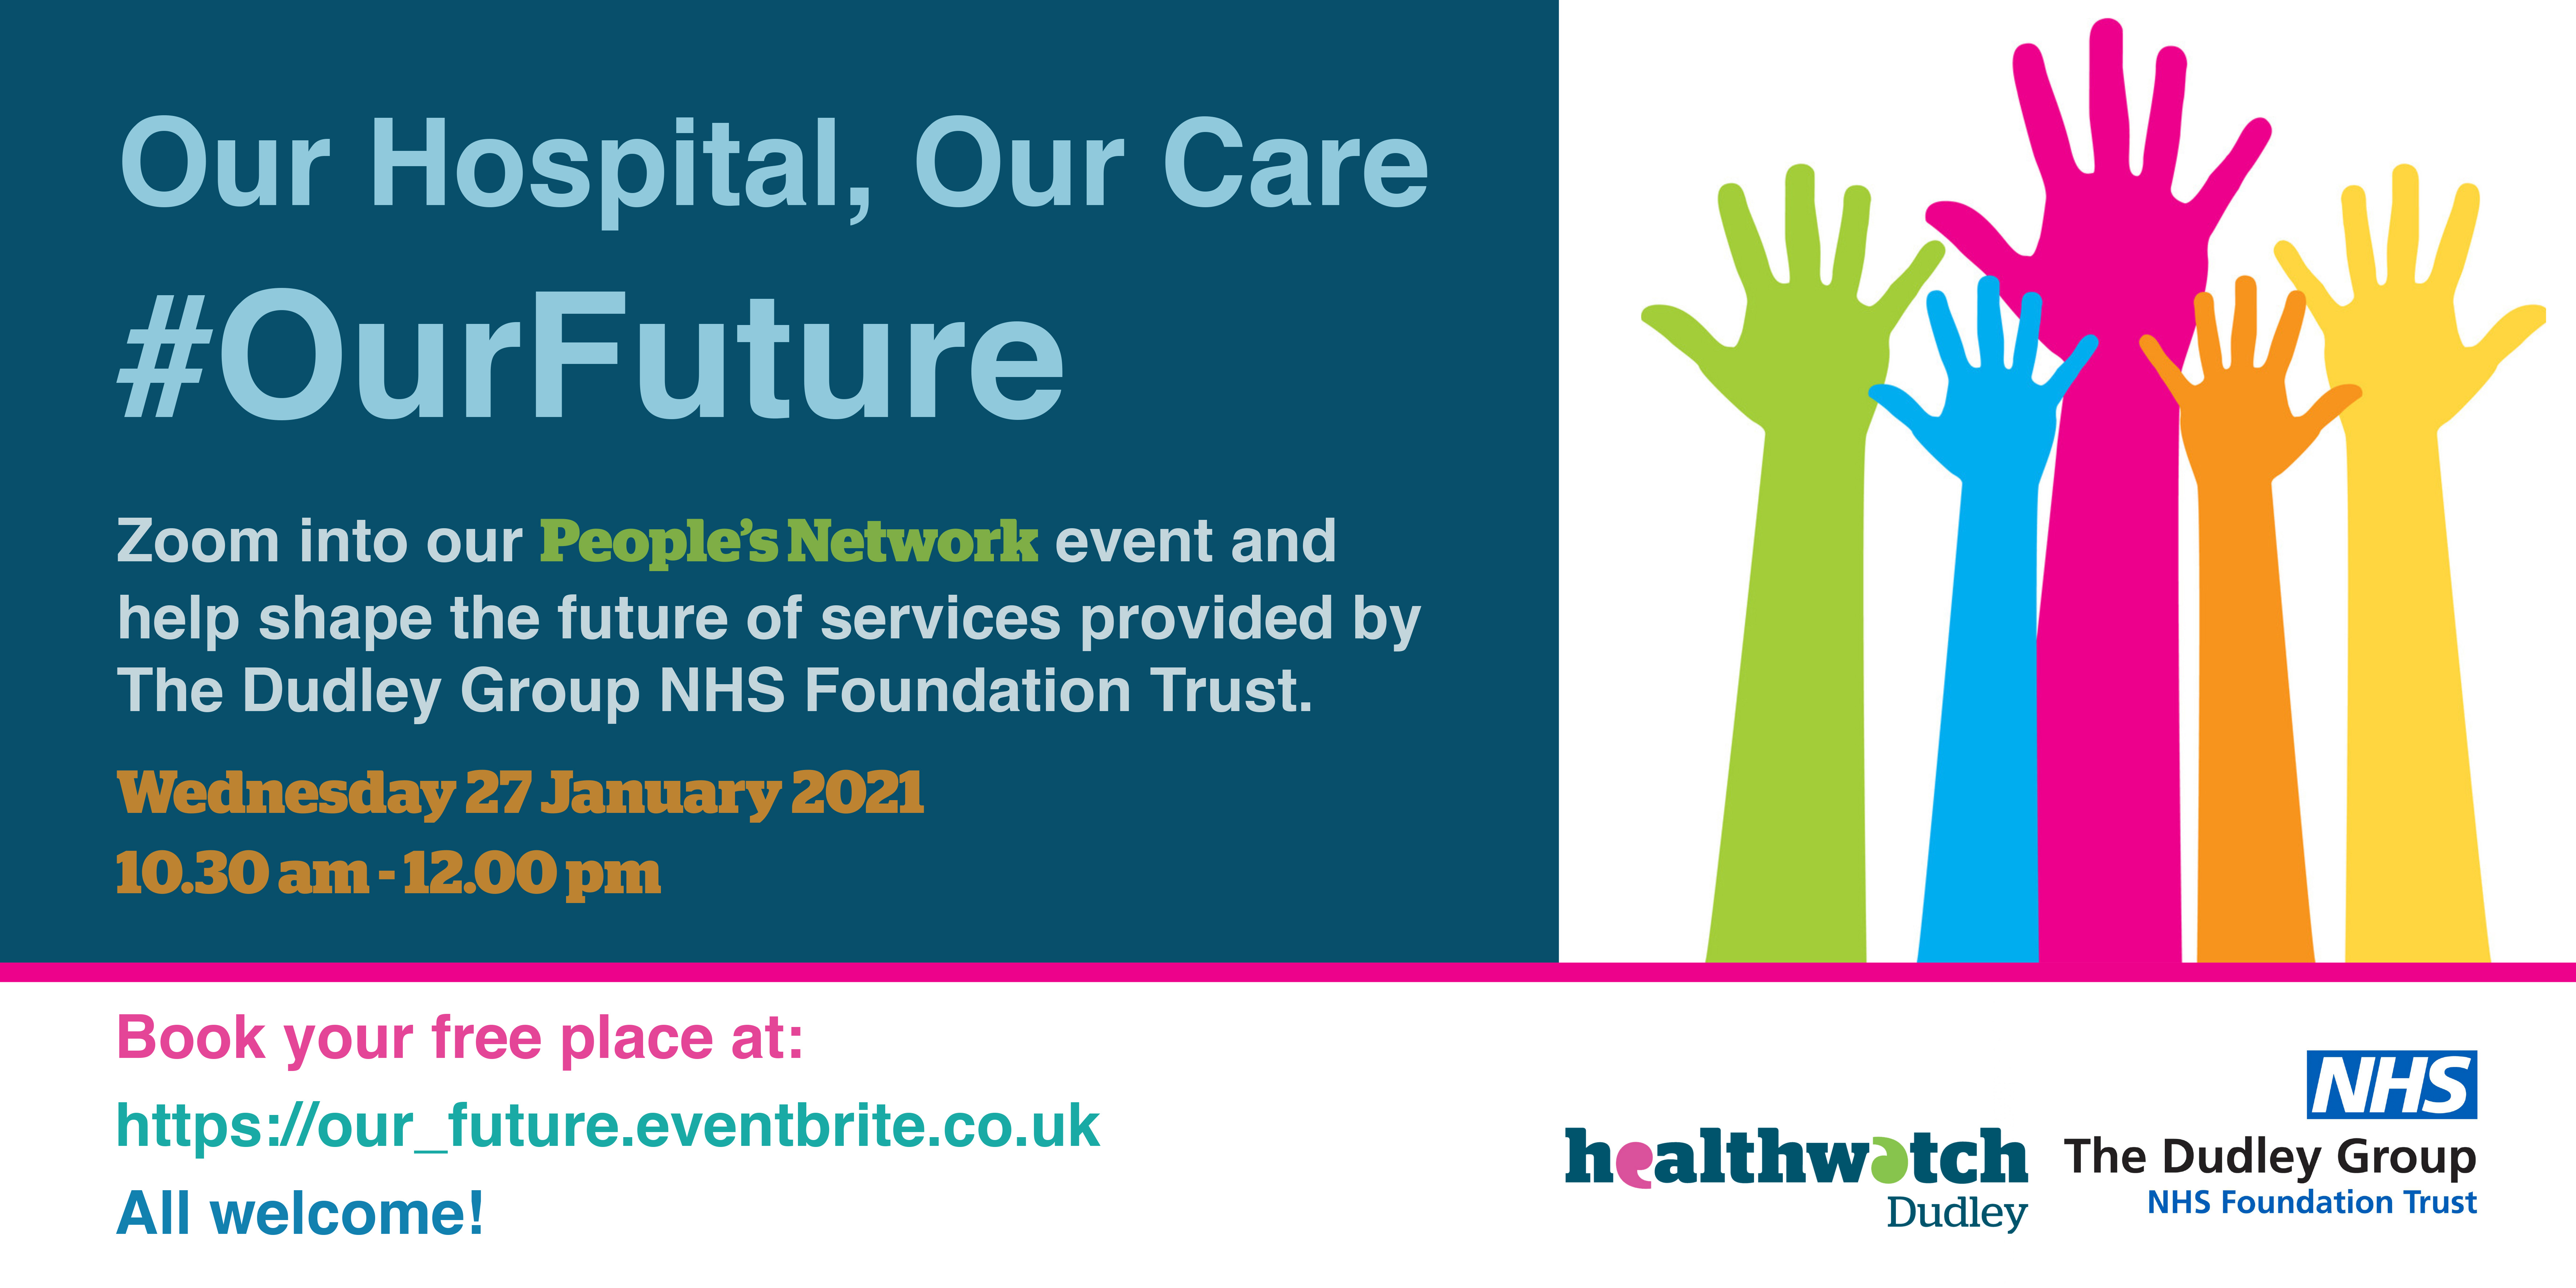 Our Hospital, Our Care, #OurFuture. Zoom into our People's Network event and help shape the future of services provided by The Dudley Group NHS Foundation Trust. Wednesday 27 January 2021, 10.30am to 12.00pm